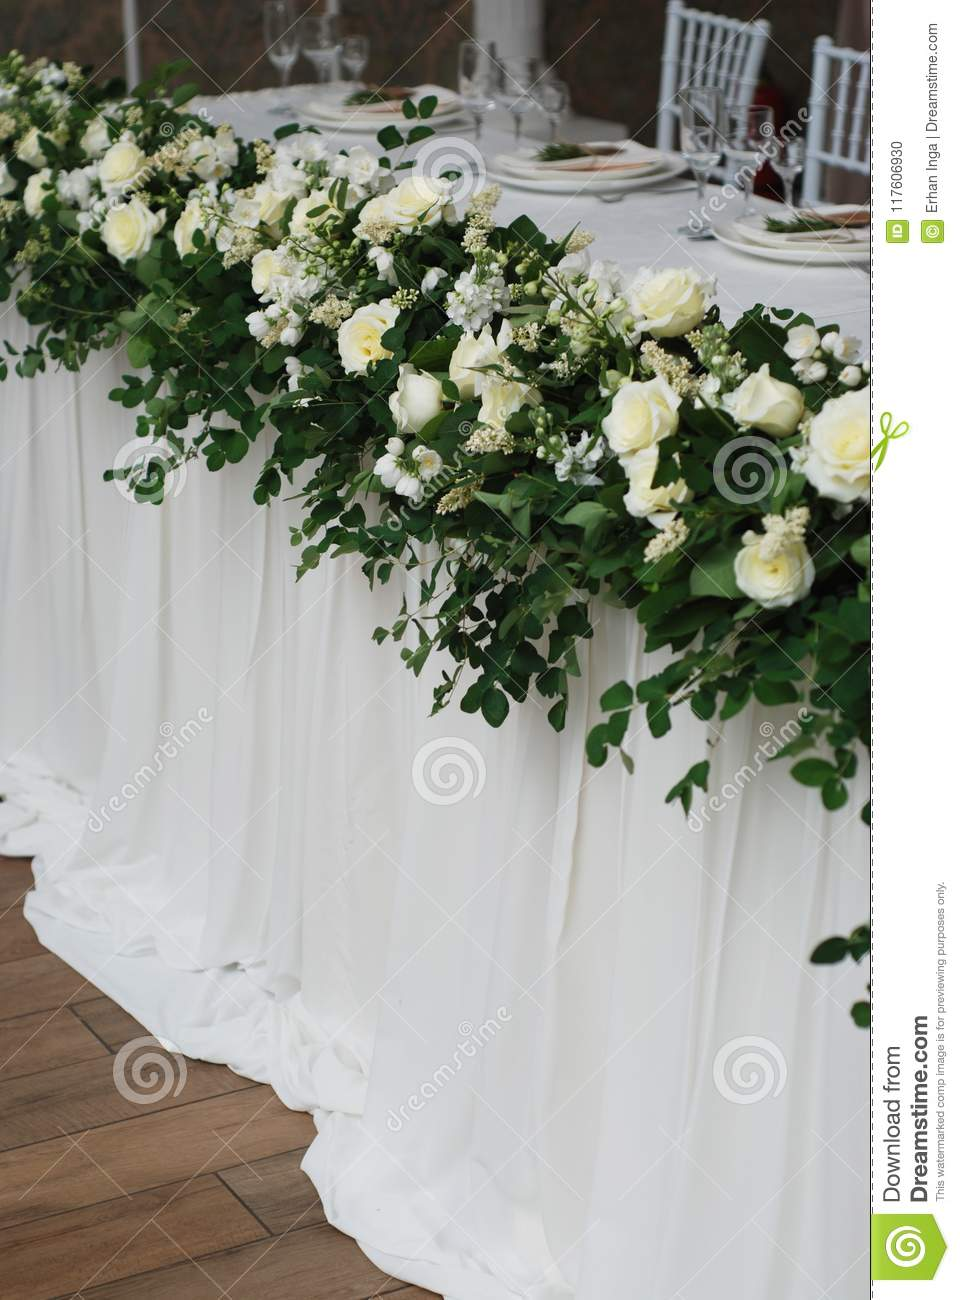 Beautiful White And Green Flower Decoration Arrangement On Wedding